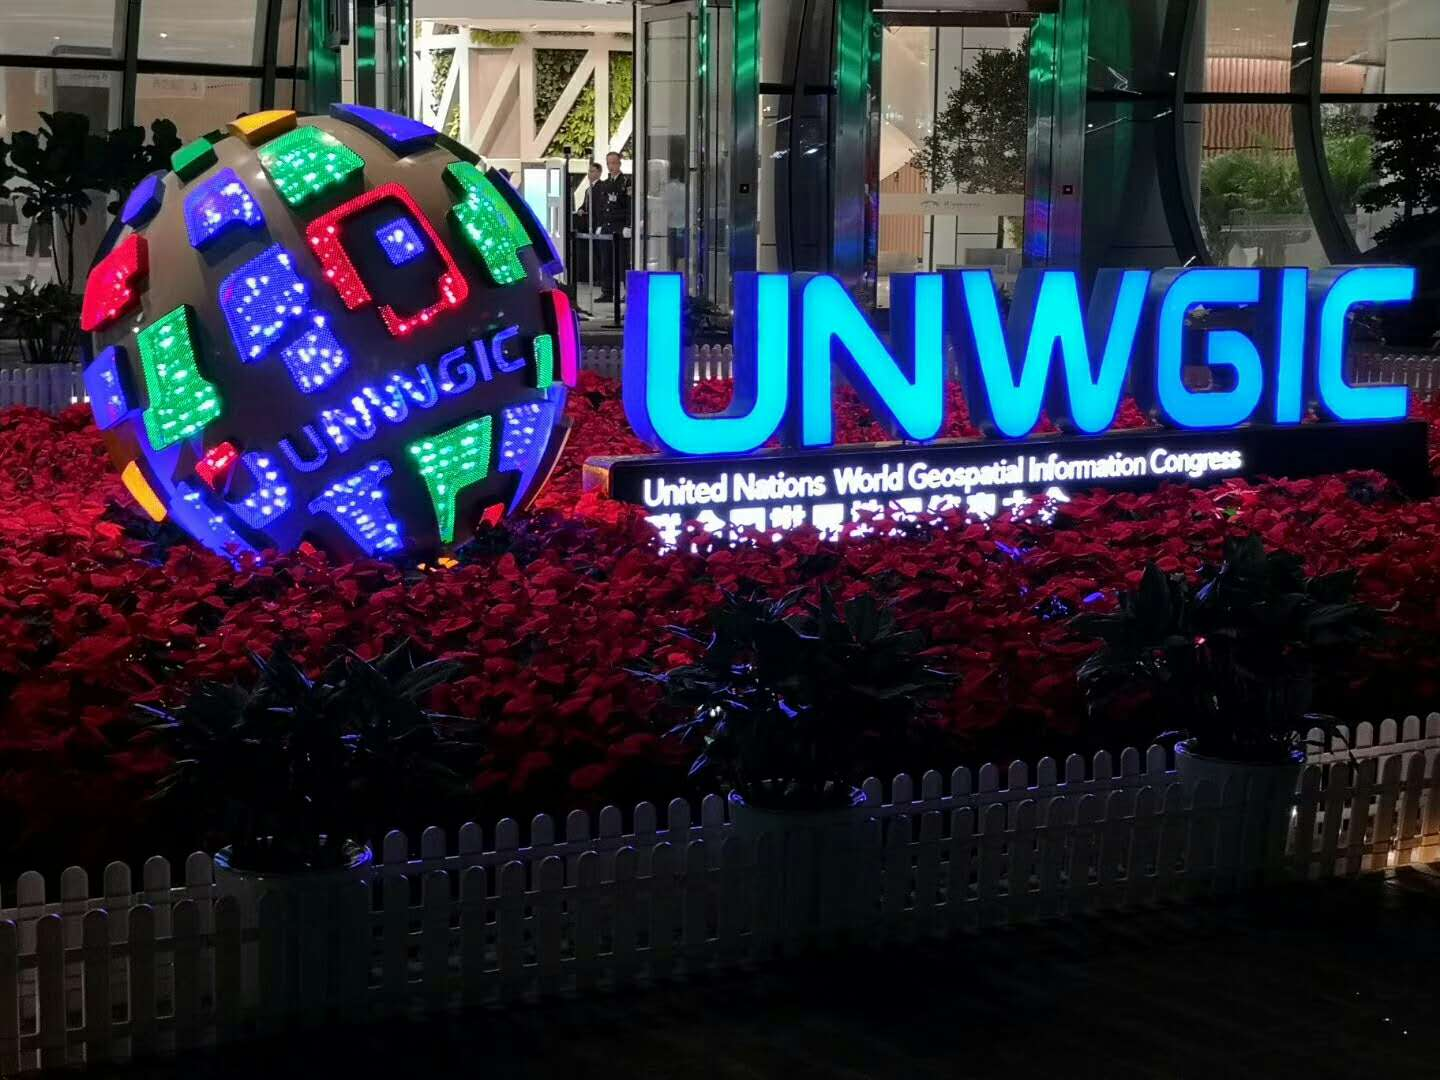 20181122111411832 - The First UNWGIC Came to an End in China